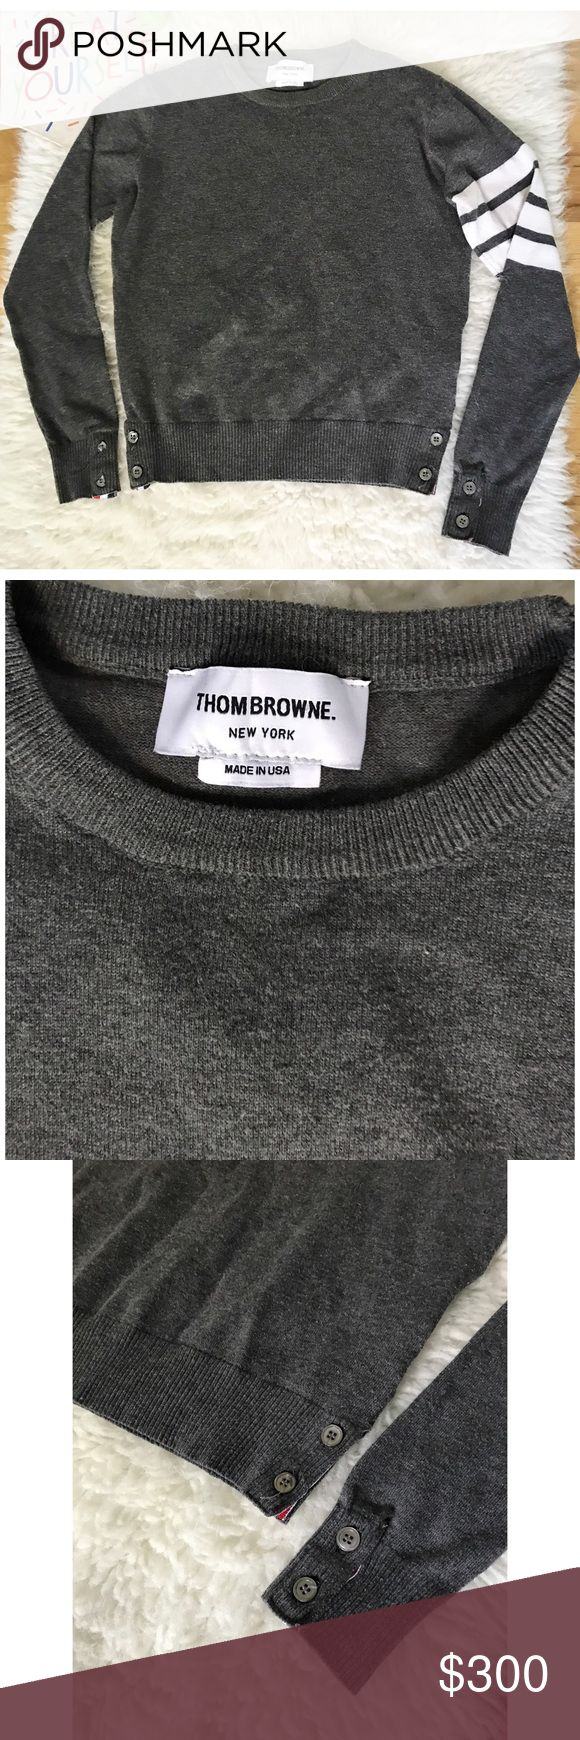 """Thom Browne Classic Striped Sleeve Buttons Sweater Still in great pre-loved authentic classic Thome Browne sweater in size 0, like a size x-small.  No major flaws except the the buttons on the right sleeevs have cracked but still can Button Up. See 7th pics above for detail. No major pilings/snags. Measure about 20"""" length, 17"""" pit to pit, about 22.25 sleeves. Still selling similar style on high end dept stores for ice $1300. ❌No trades or modeling. Open to reasonable offers. Bundle and save…"""